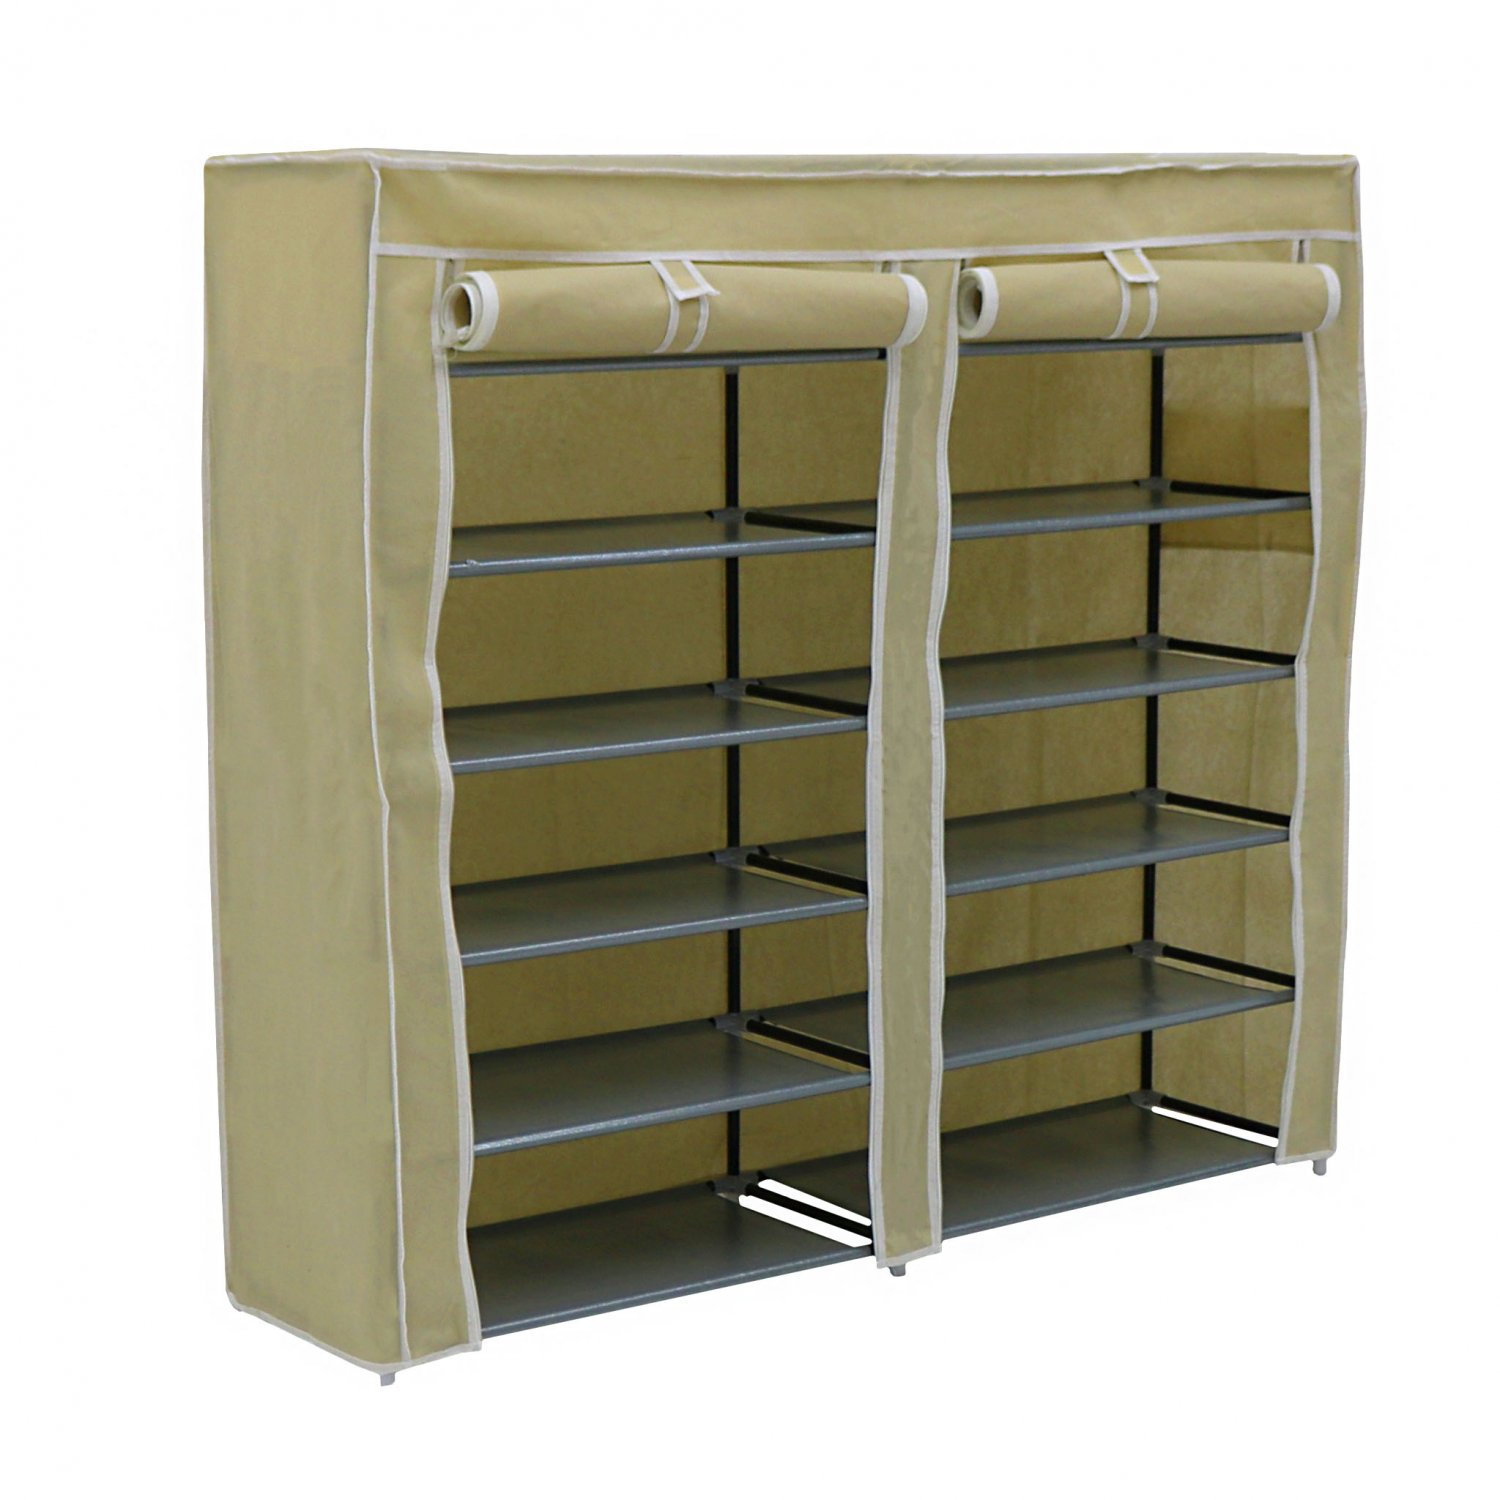 6 Tier 36 Pair Double Cream Canvas Shoe Rack Cabinet Storage